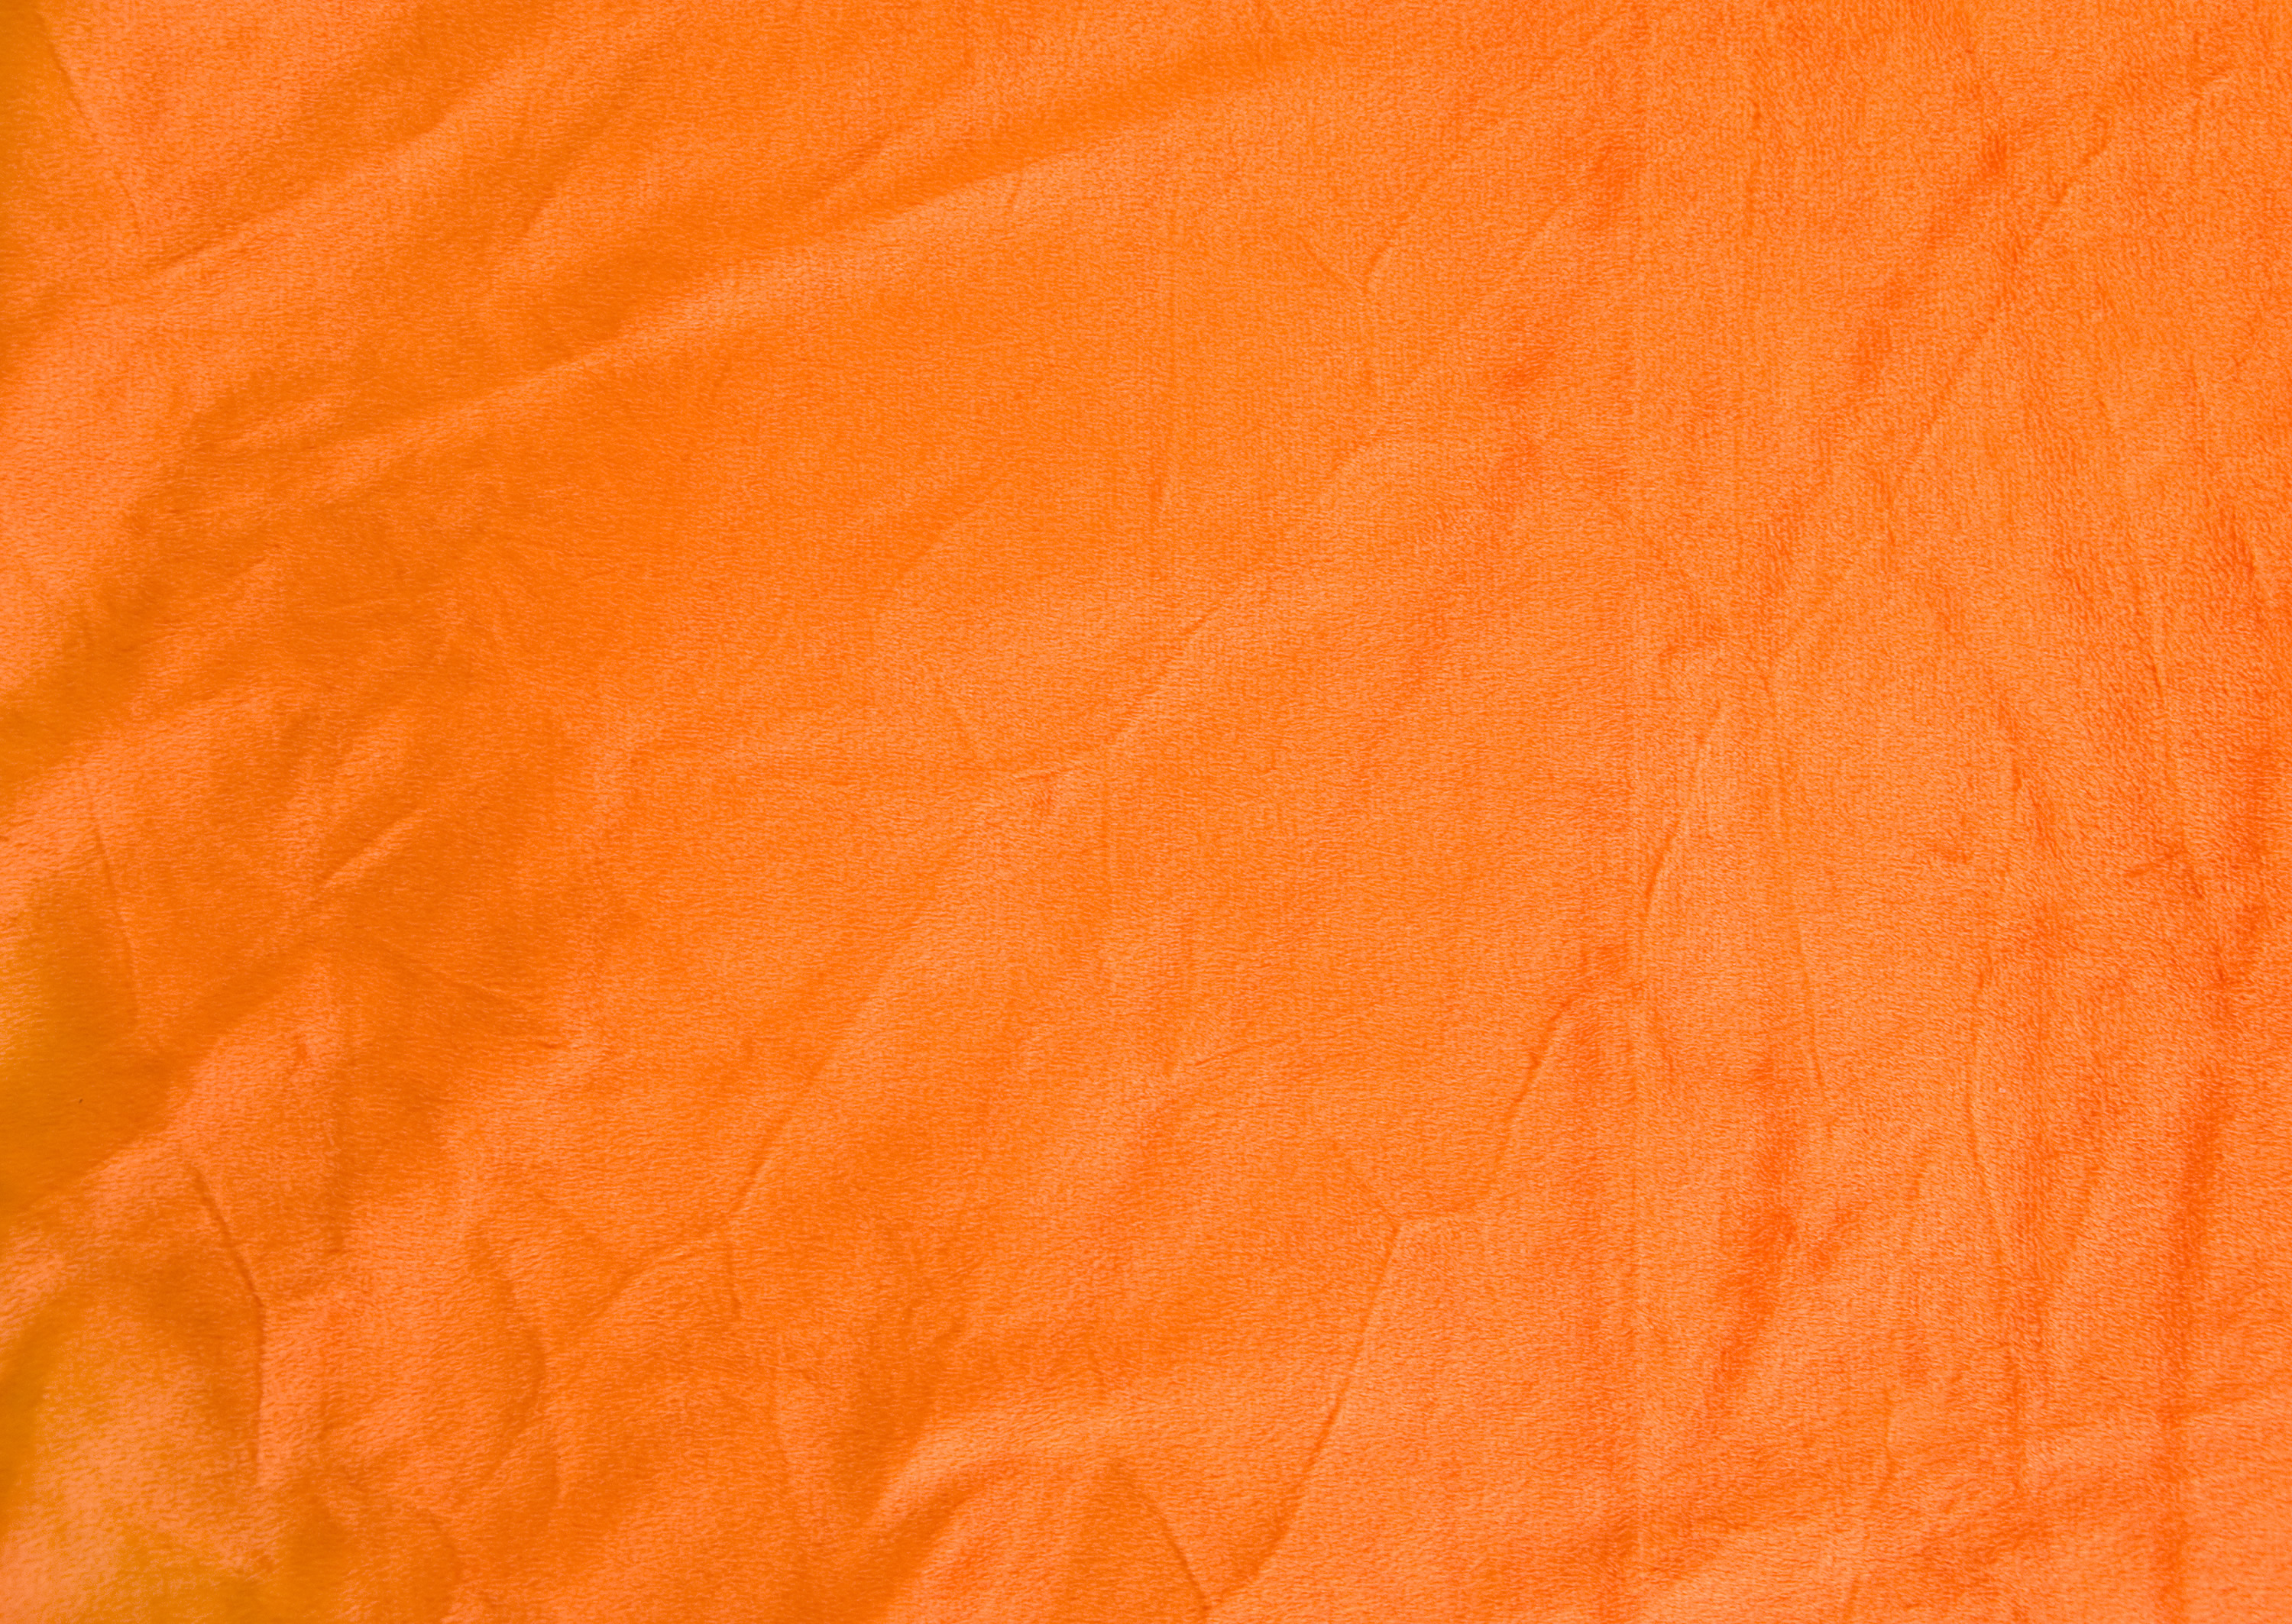 texture, background, orange velvet texture